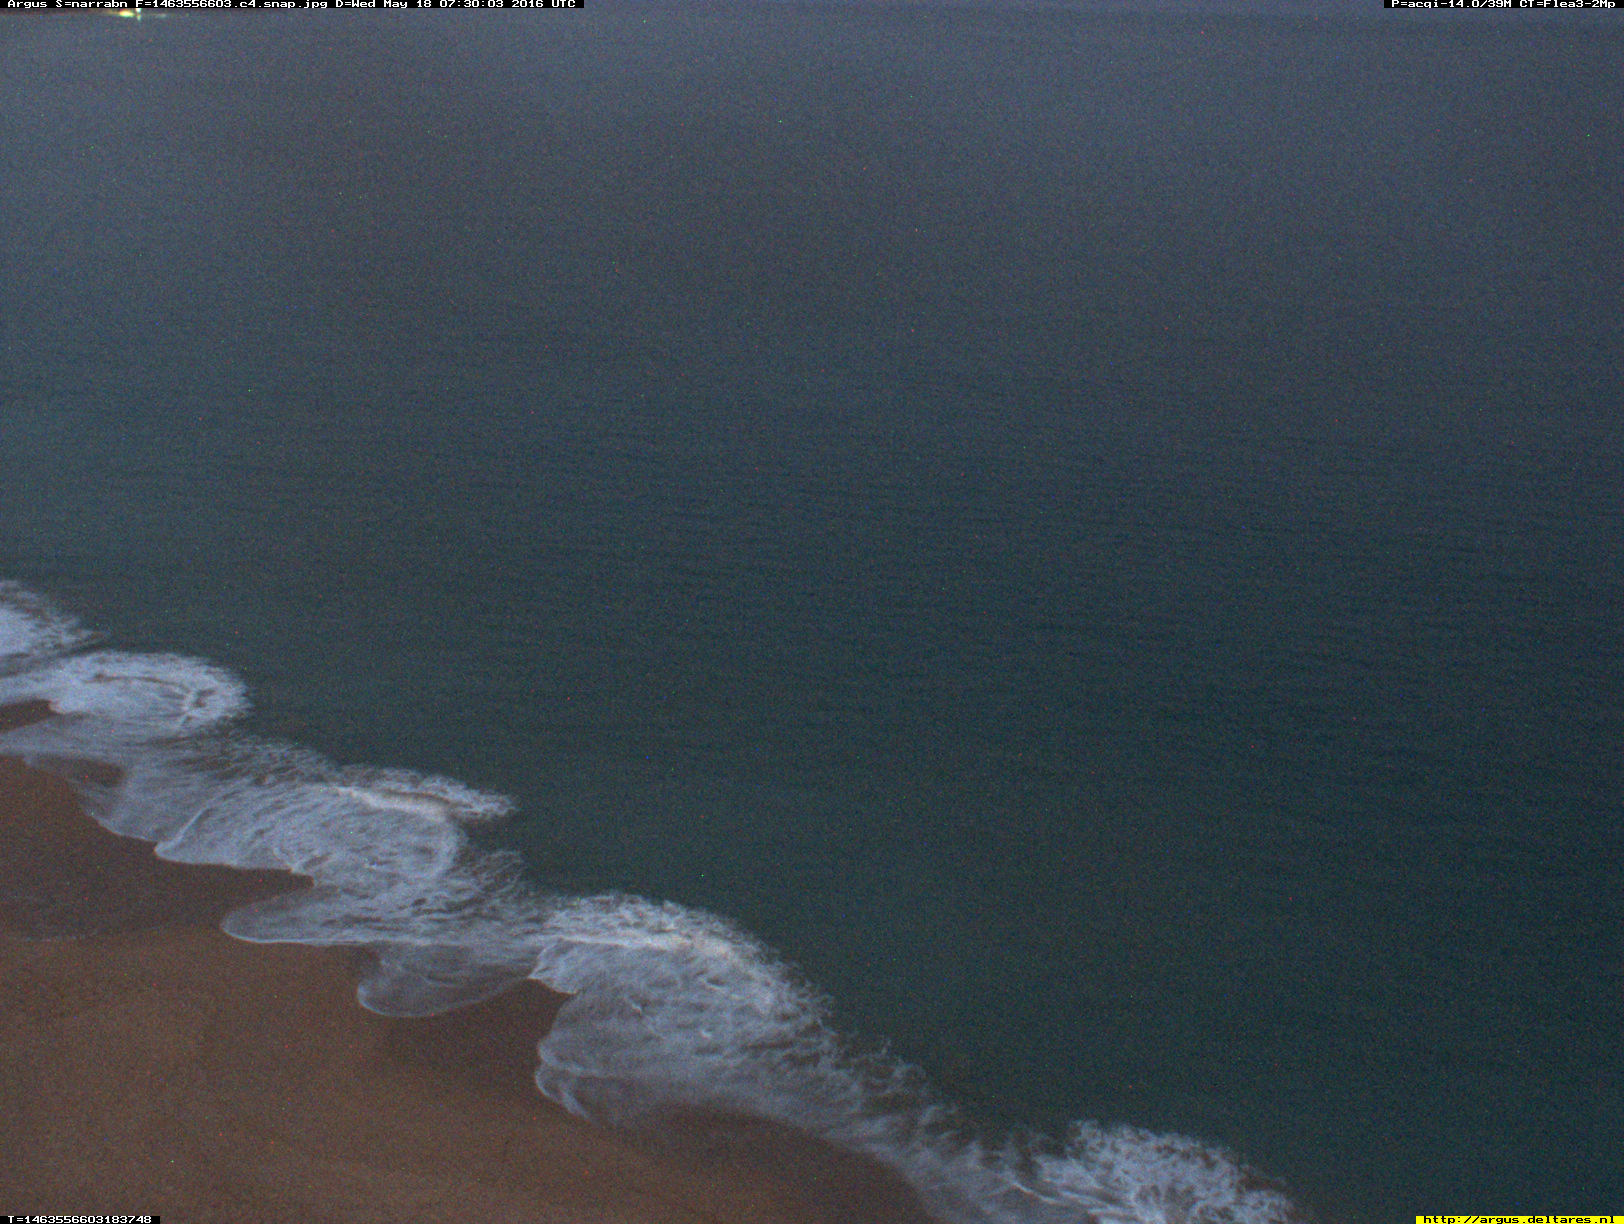 Narrabeen webcam - Narrabeen - Collaroy 4 webcam, New South Wales , Sydney